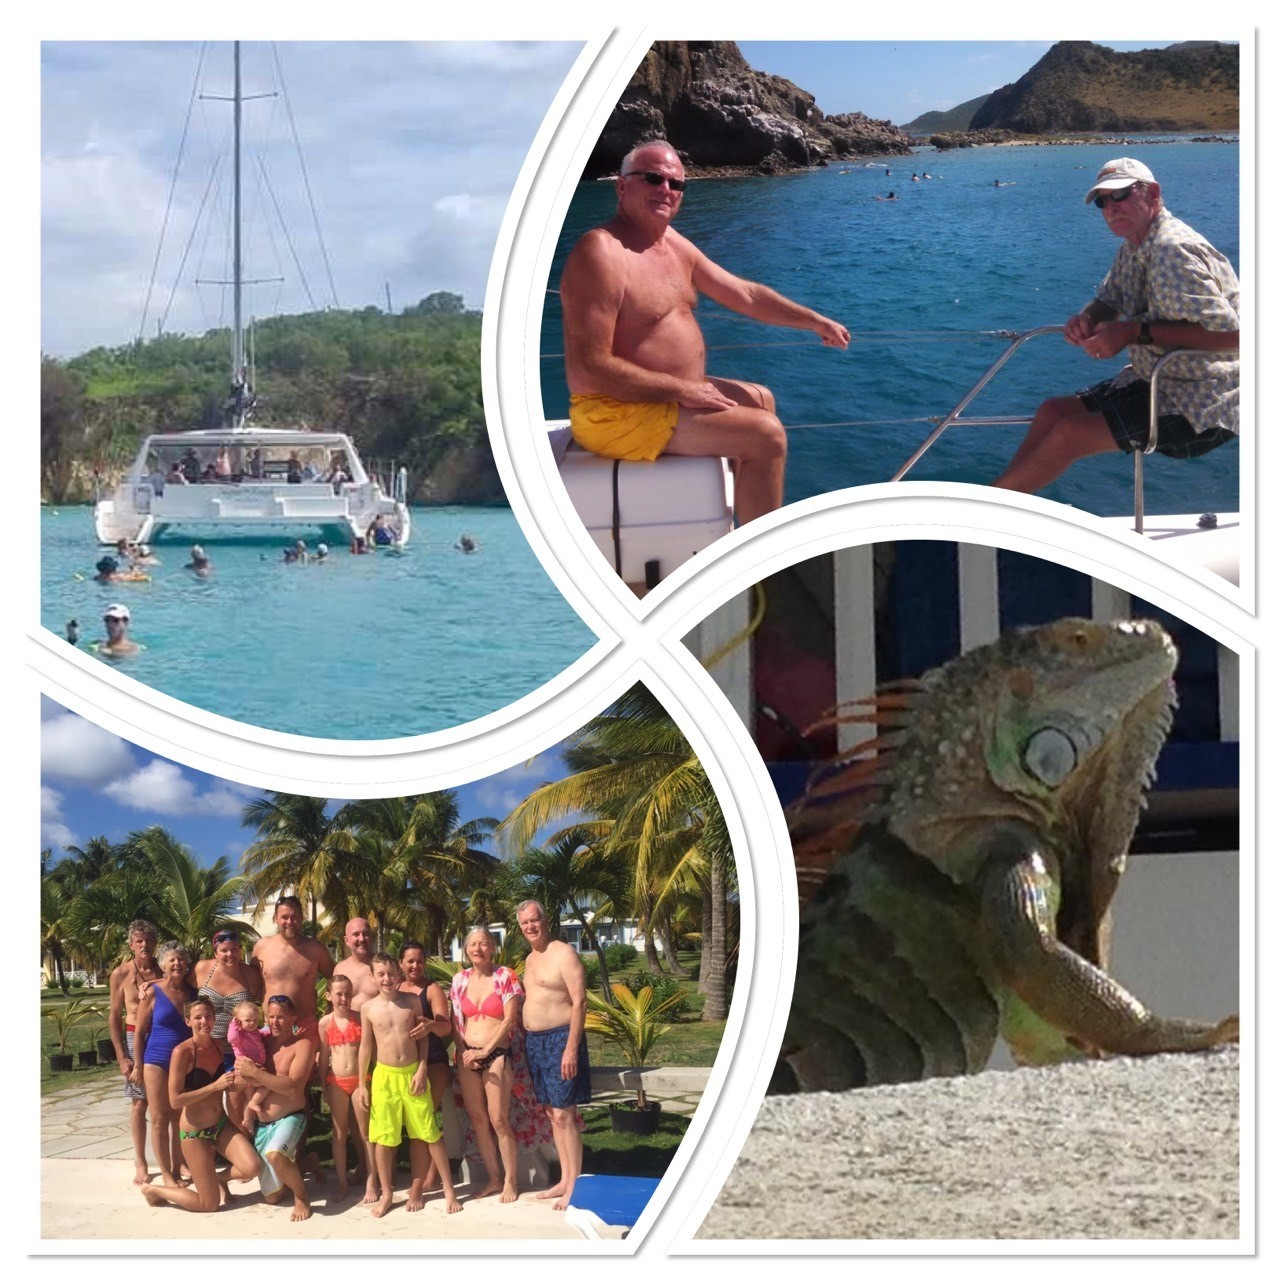 Are you looking to book a great adventure in St. Maarten with your friends and family?☀️ Come sail with us. 😉⛵ Next weeks program: Wednesday - Friday. January 18th & 20th - 2 ISLAND STOP. Creole Rock & lunch at the restaurant at Rendezvous Bay- Anguilla, on the way back Lasamanna.🐠🏖 Thursday January 19th - FRENCH SIDE SAILING. With stops at Creole Rock, Lunch at the restaurant in Anse Marcel & Happy bay. 🐟🌞 Saturday January 21t - LITTLE BAY- ANGUILLA. Stops at Little Bay - in Anguilla natural reserve & La Samanna.🐢🏝 Check out our Trip Advisor and our website for more details or contact us on +1 721 580 4404, info@sugarrushcharters.com